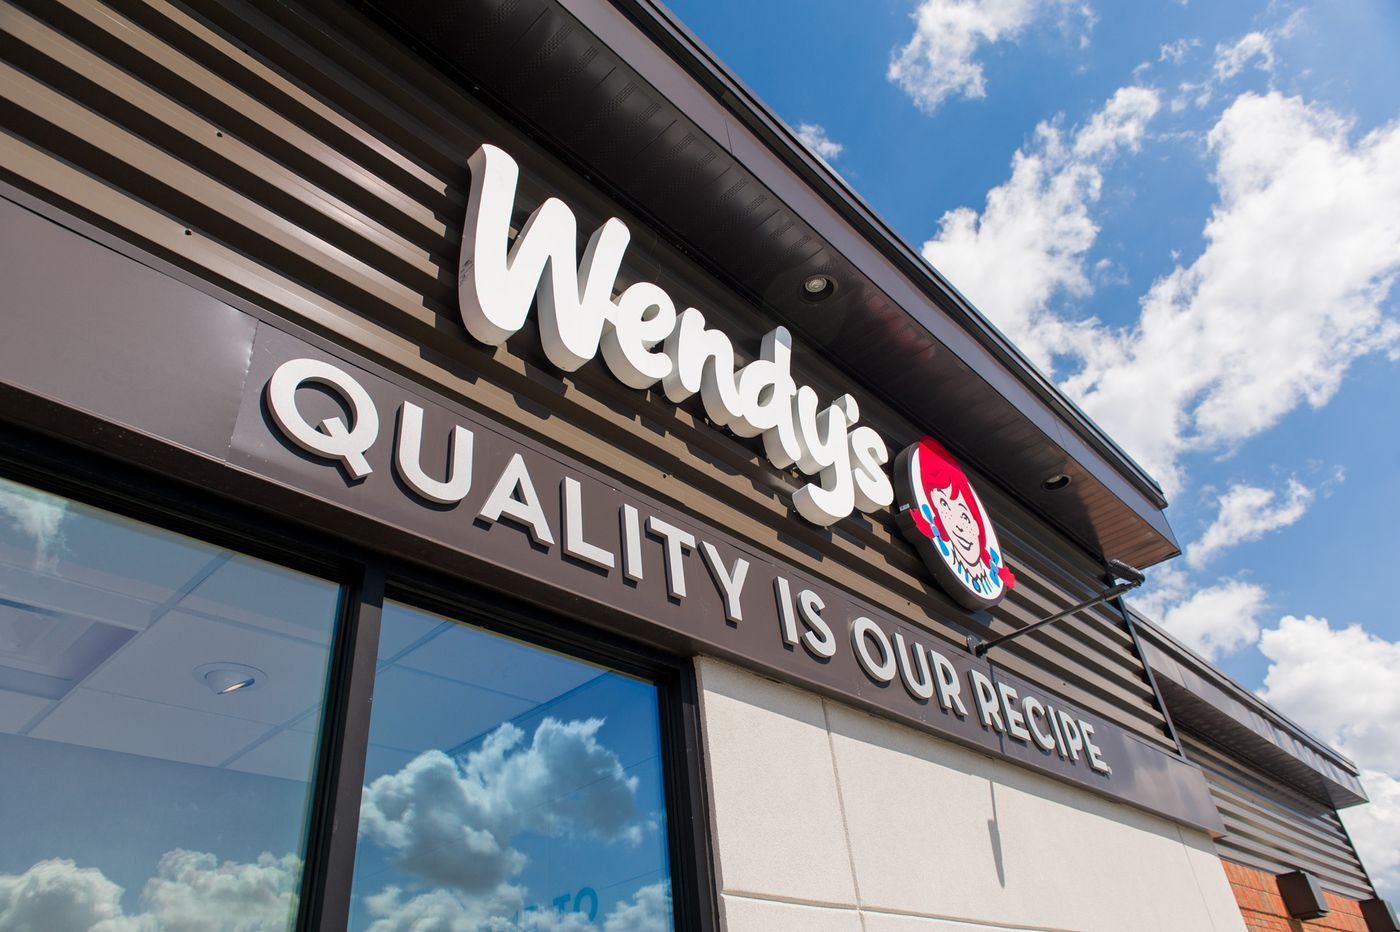 Wendy's sassy Twitter feed is fun and sets the bar for fast-food chains